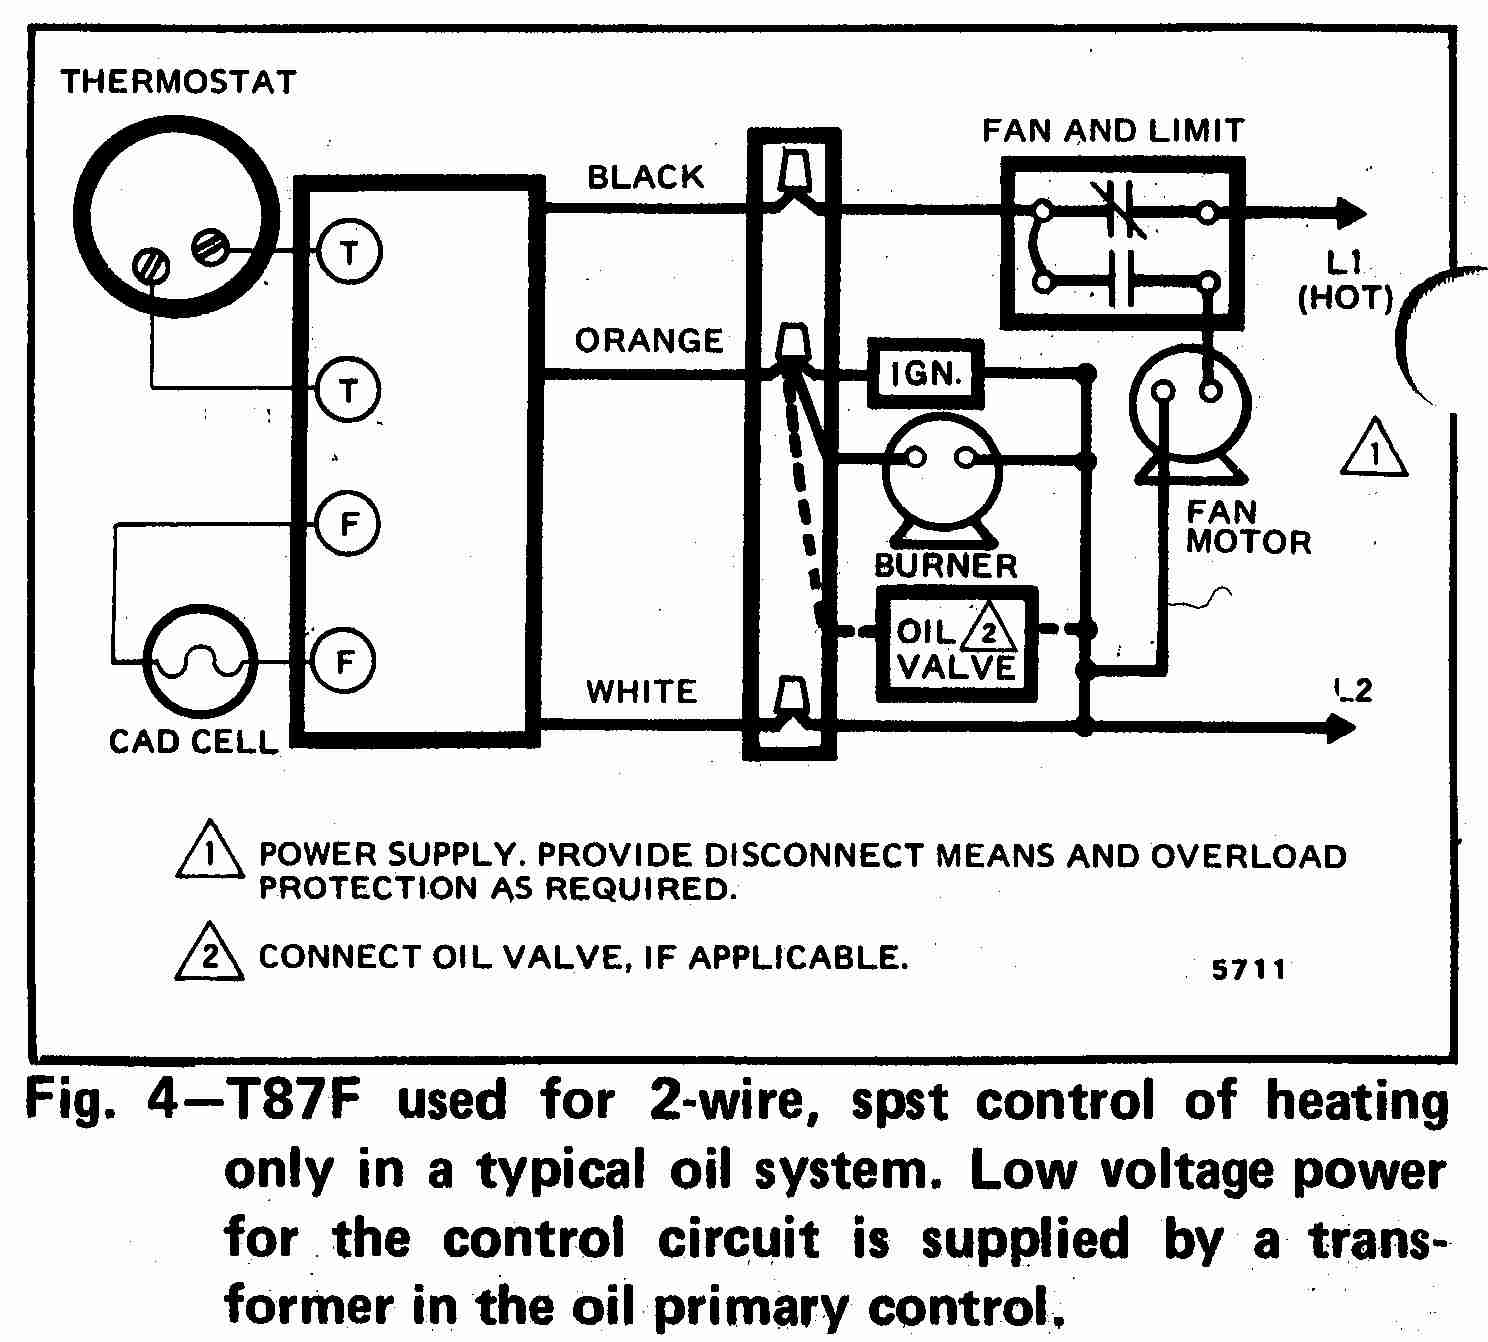 TT_T87F_0002_2W_DJF room thermostat wiring diagrams for hvac systems carrier heat pump wiring schematic at bayanpartner.co